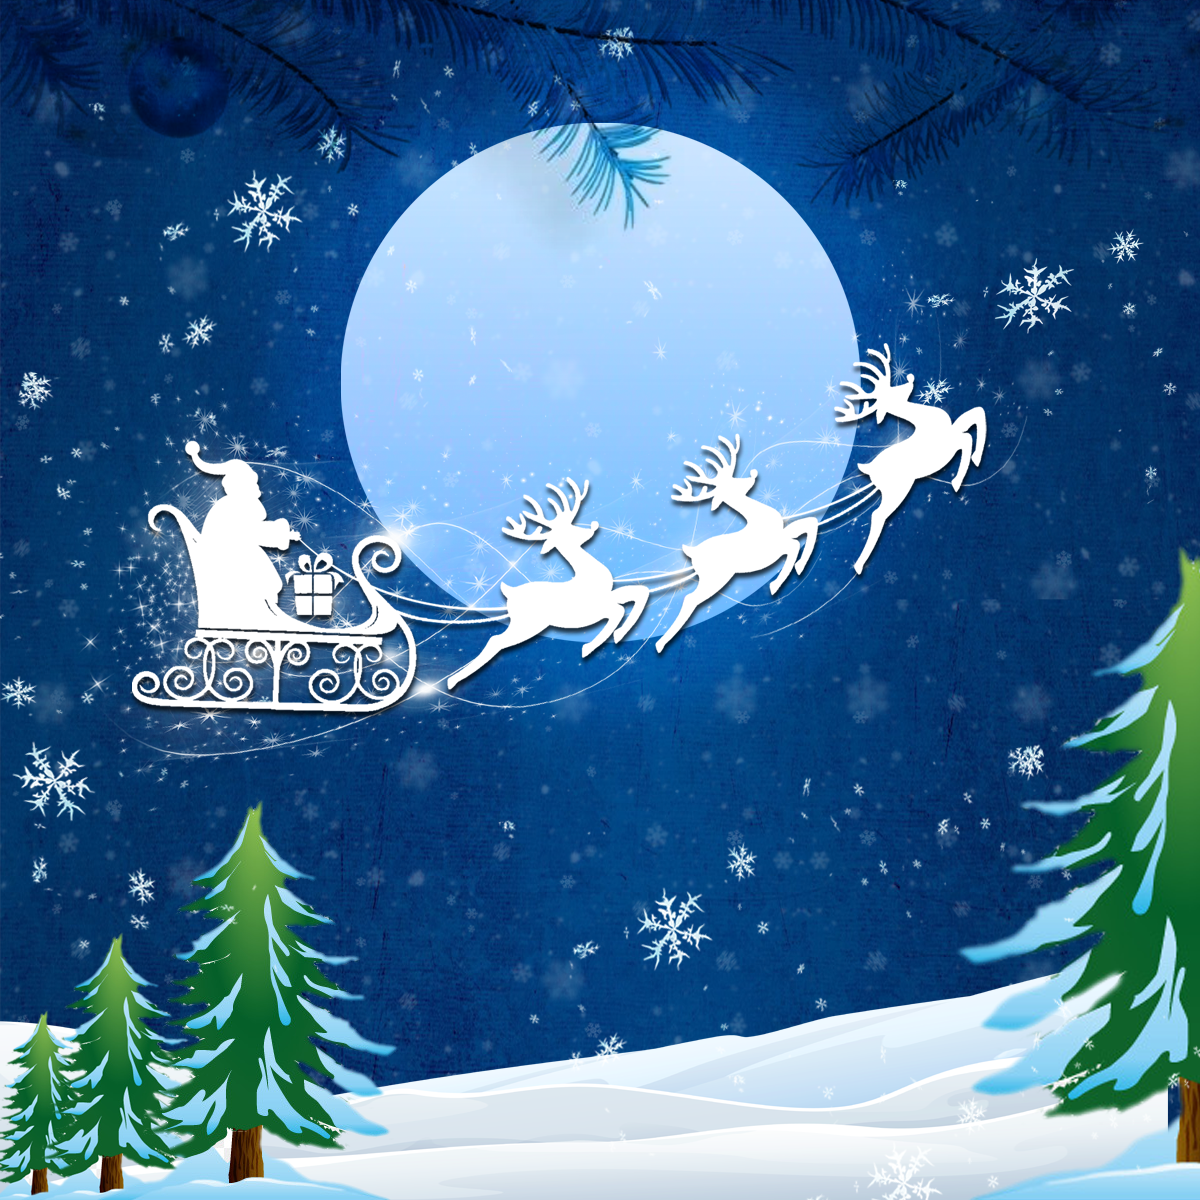 Christmas Background Merry Christmas Santa Claus On Horse Png Transparent Clipart Image And Psd File For Free Download Christmas Background Merry Christmas Background Christmas Vectors